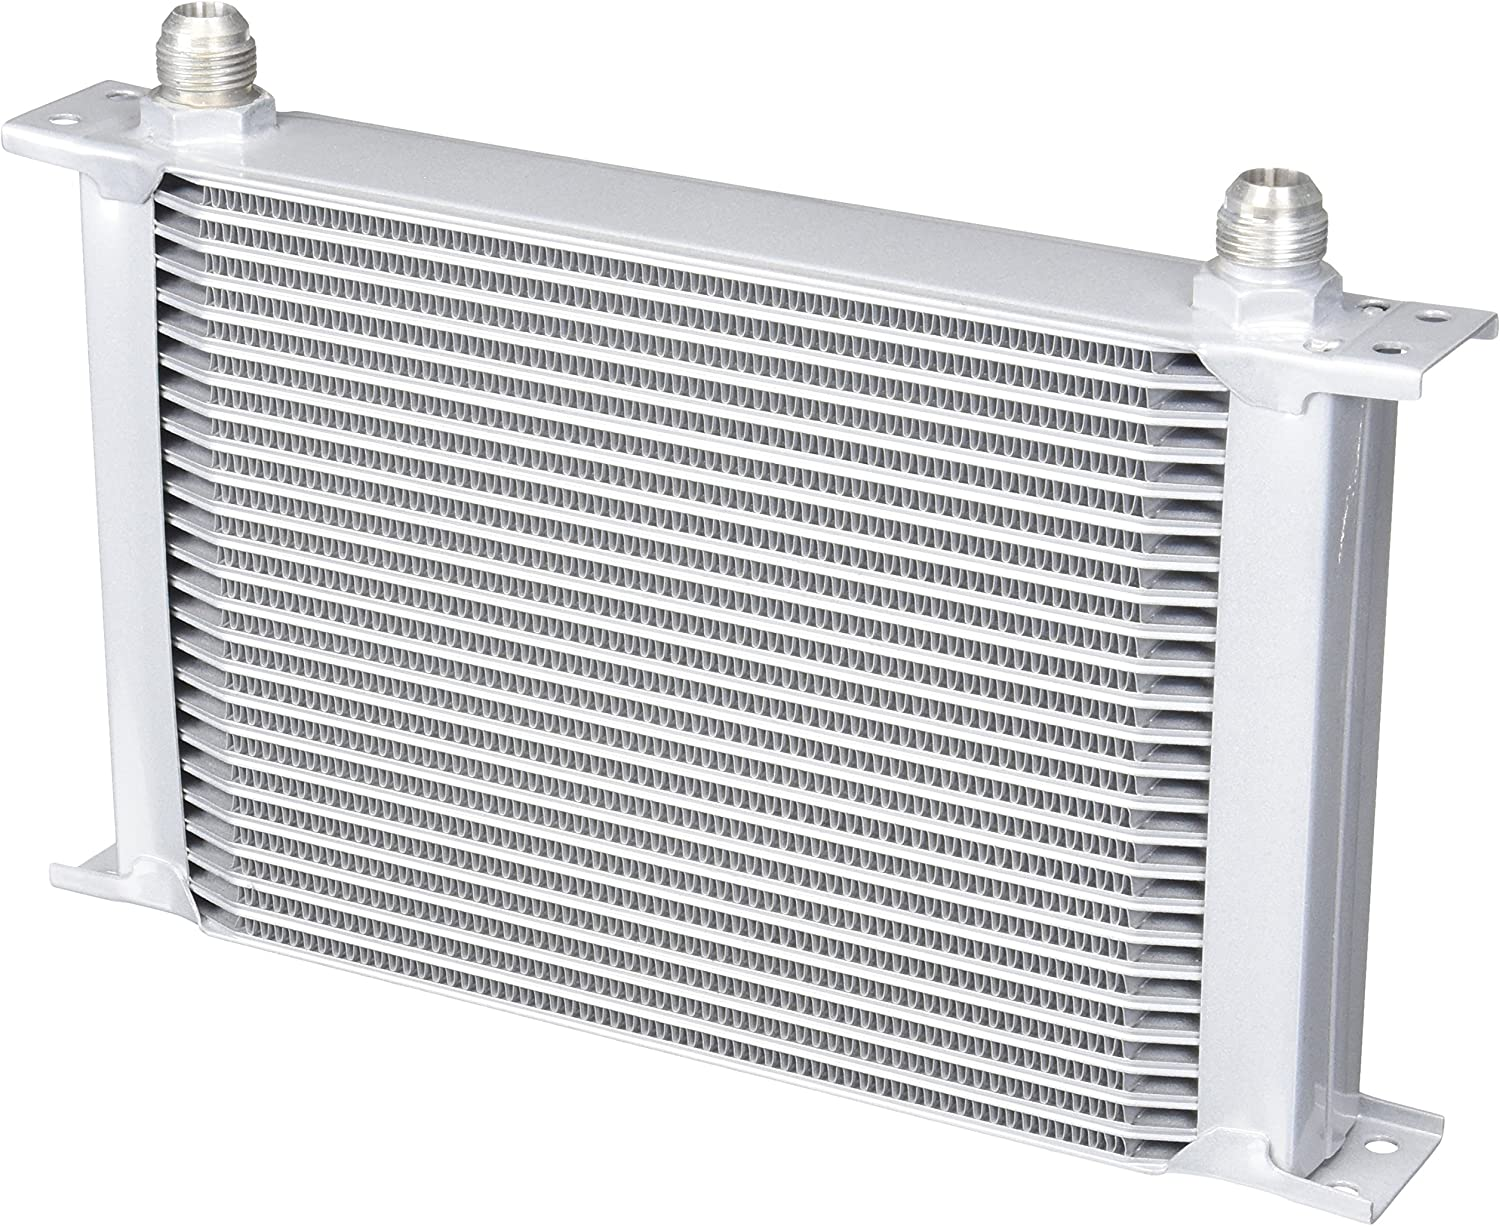 Mishimoto MMOC-25 Silver 25-Row Universal Oil Cooler